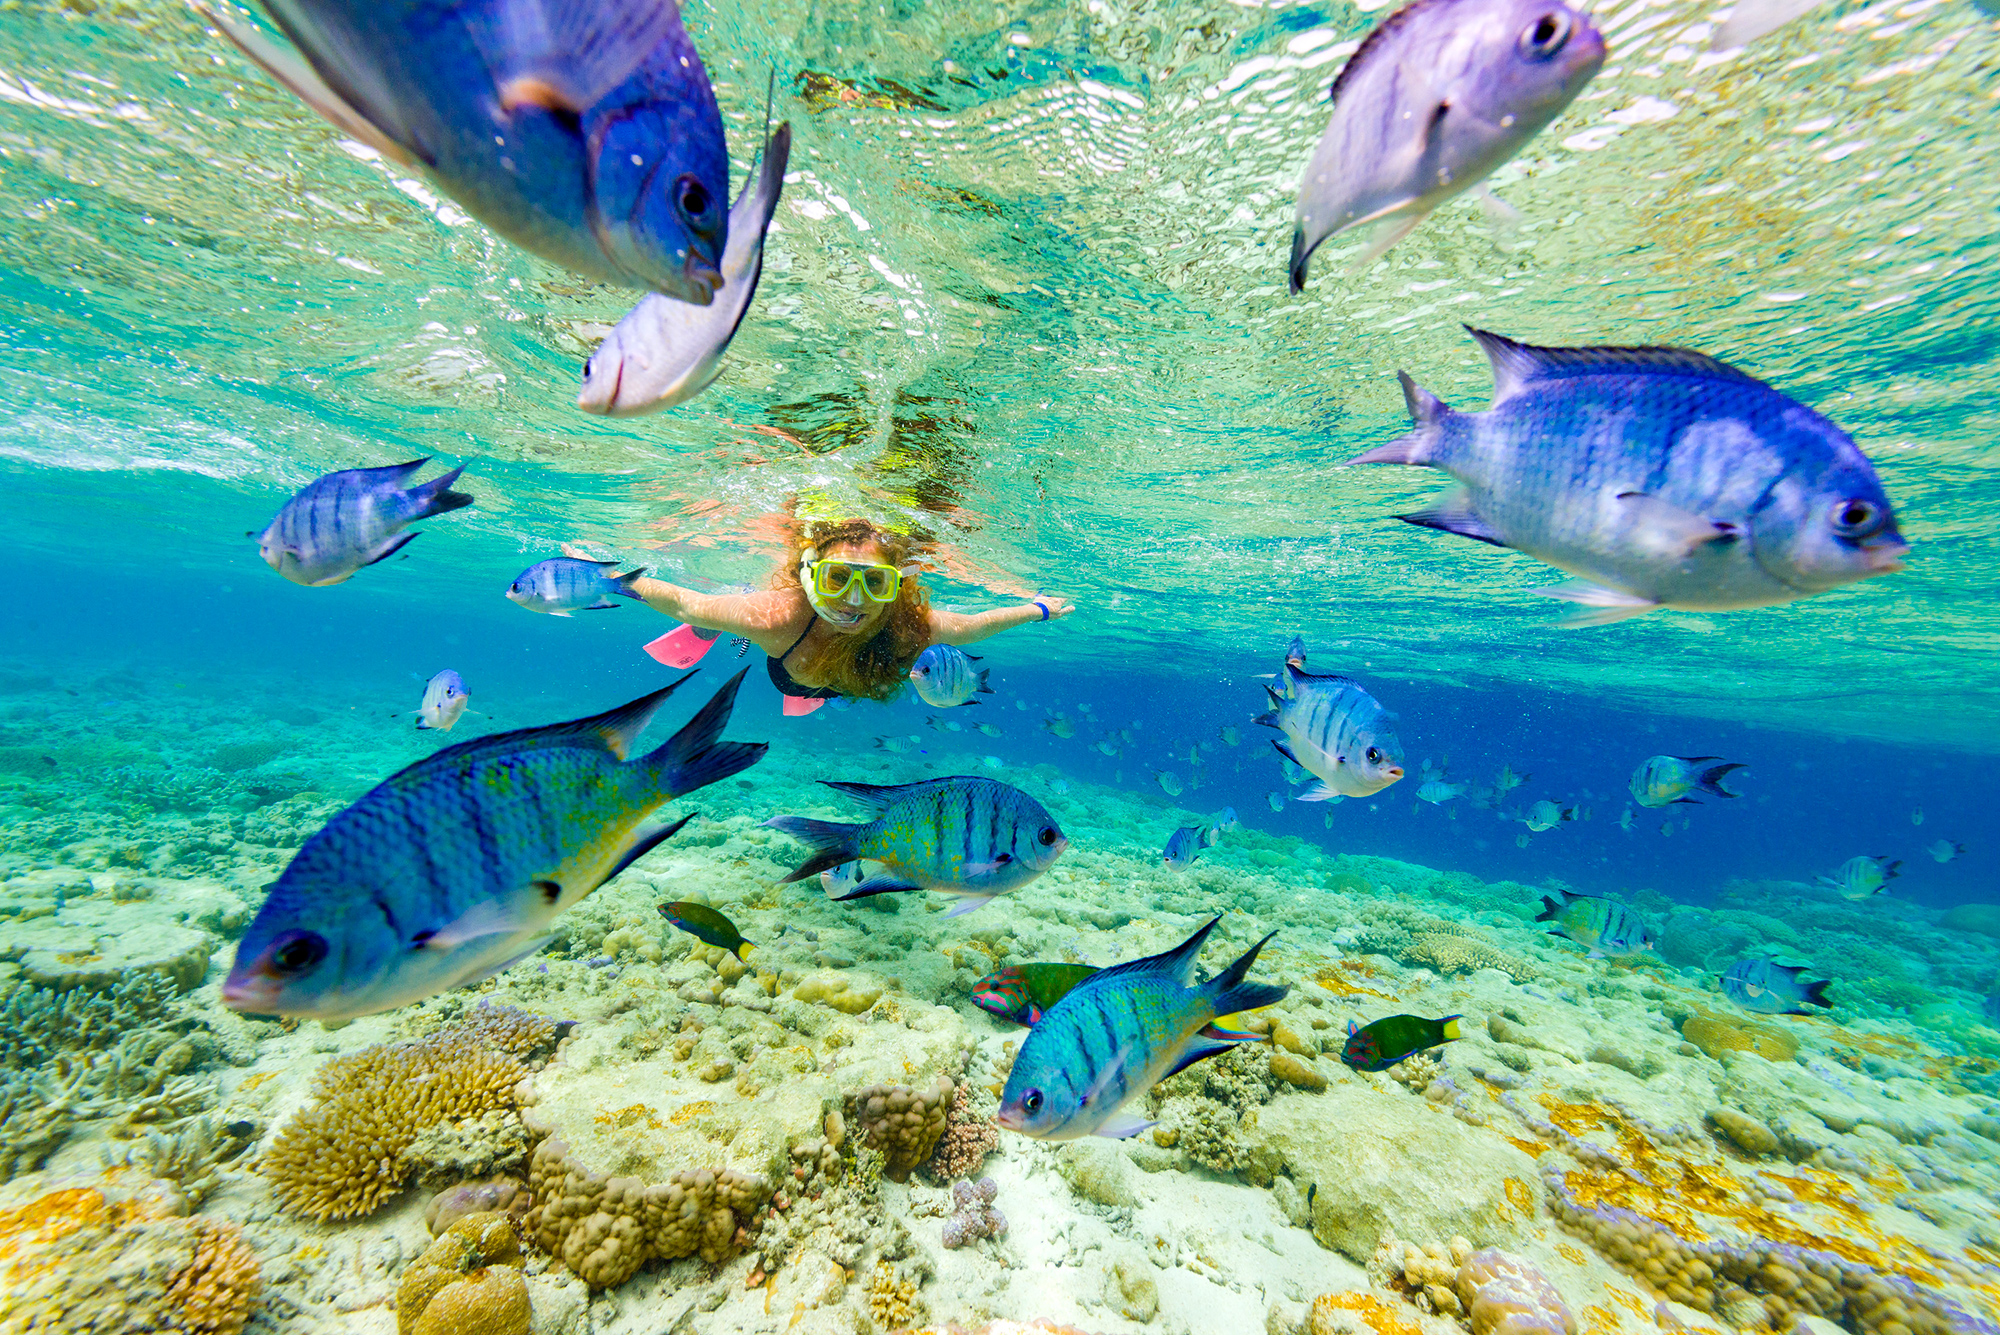 Full Day Snorkelling Barrier Reef From Hamilton Island